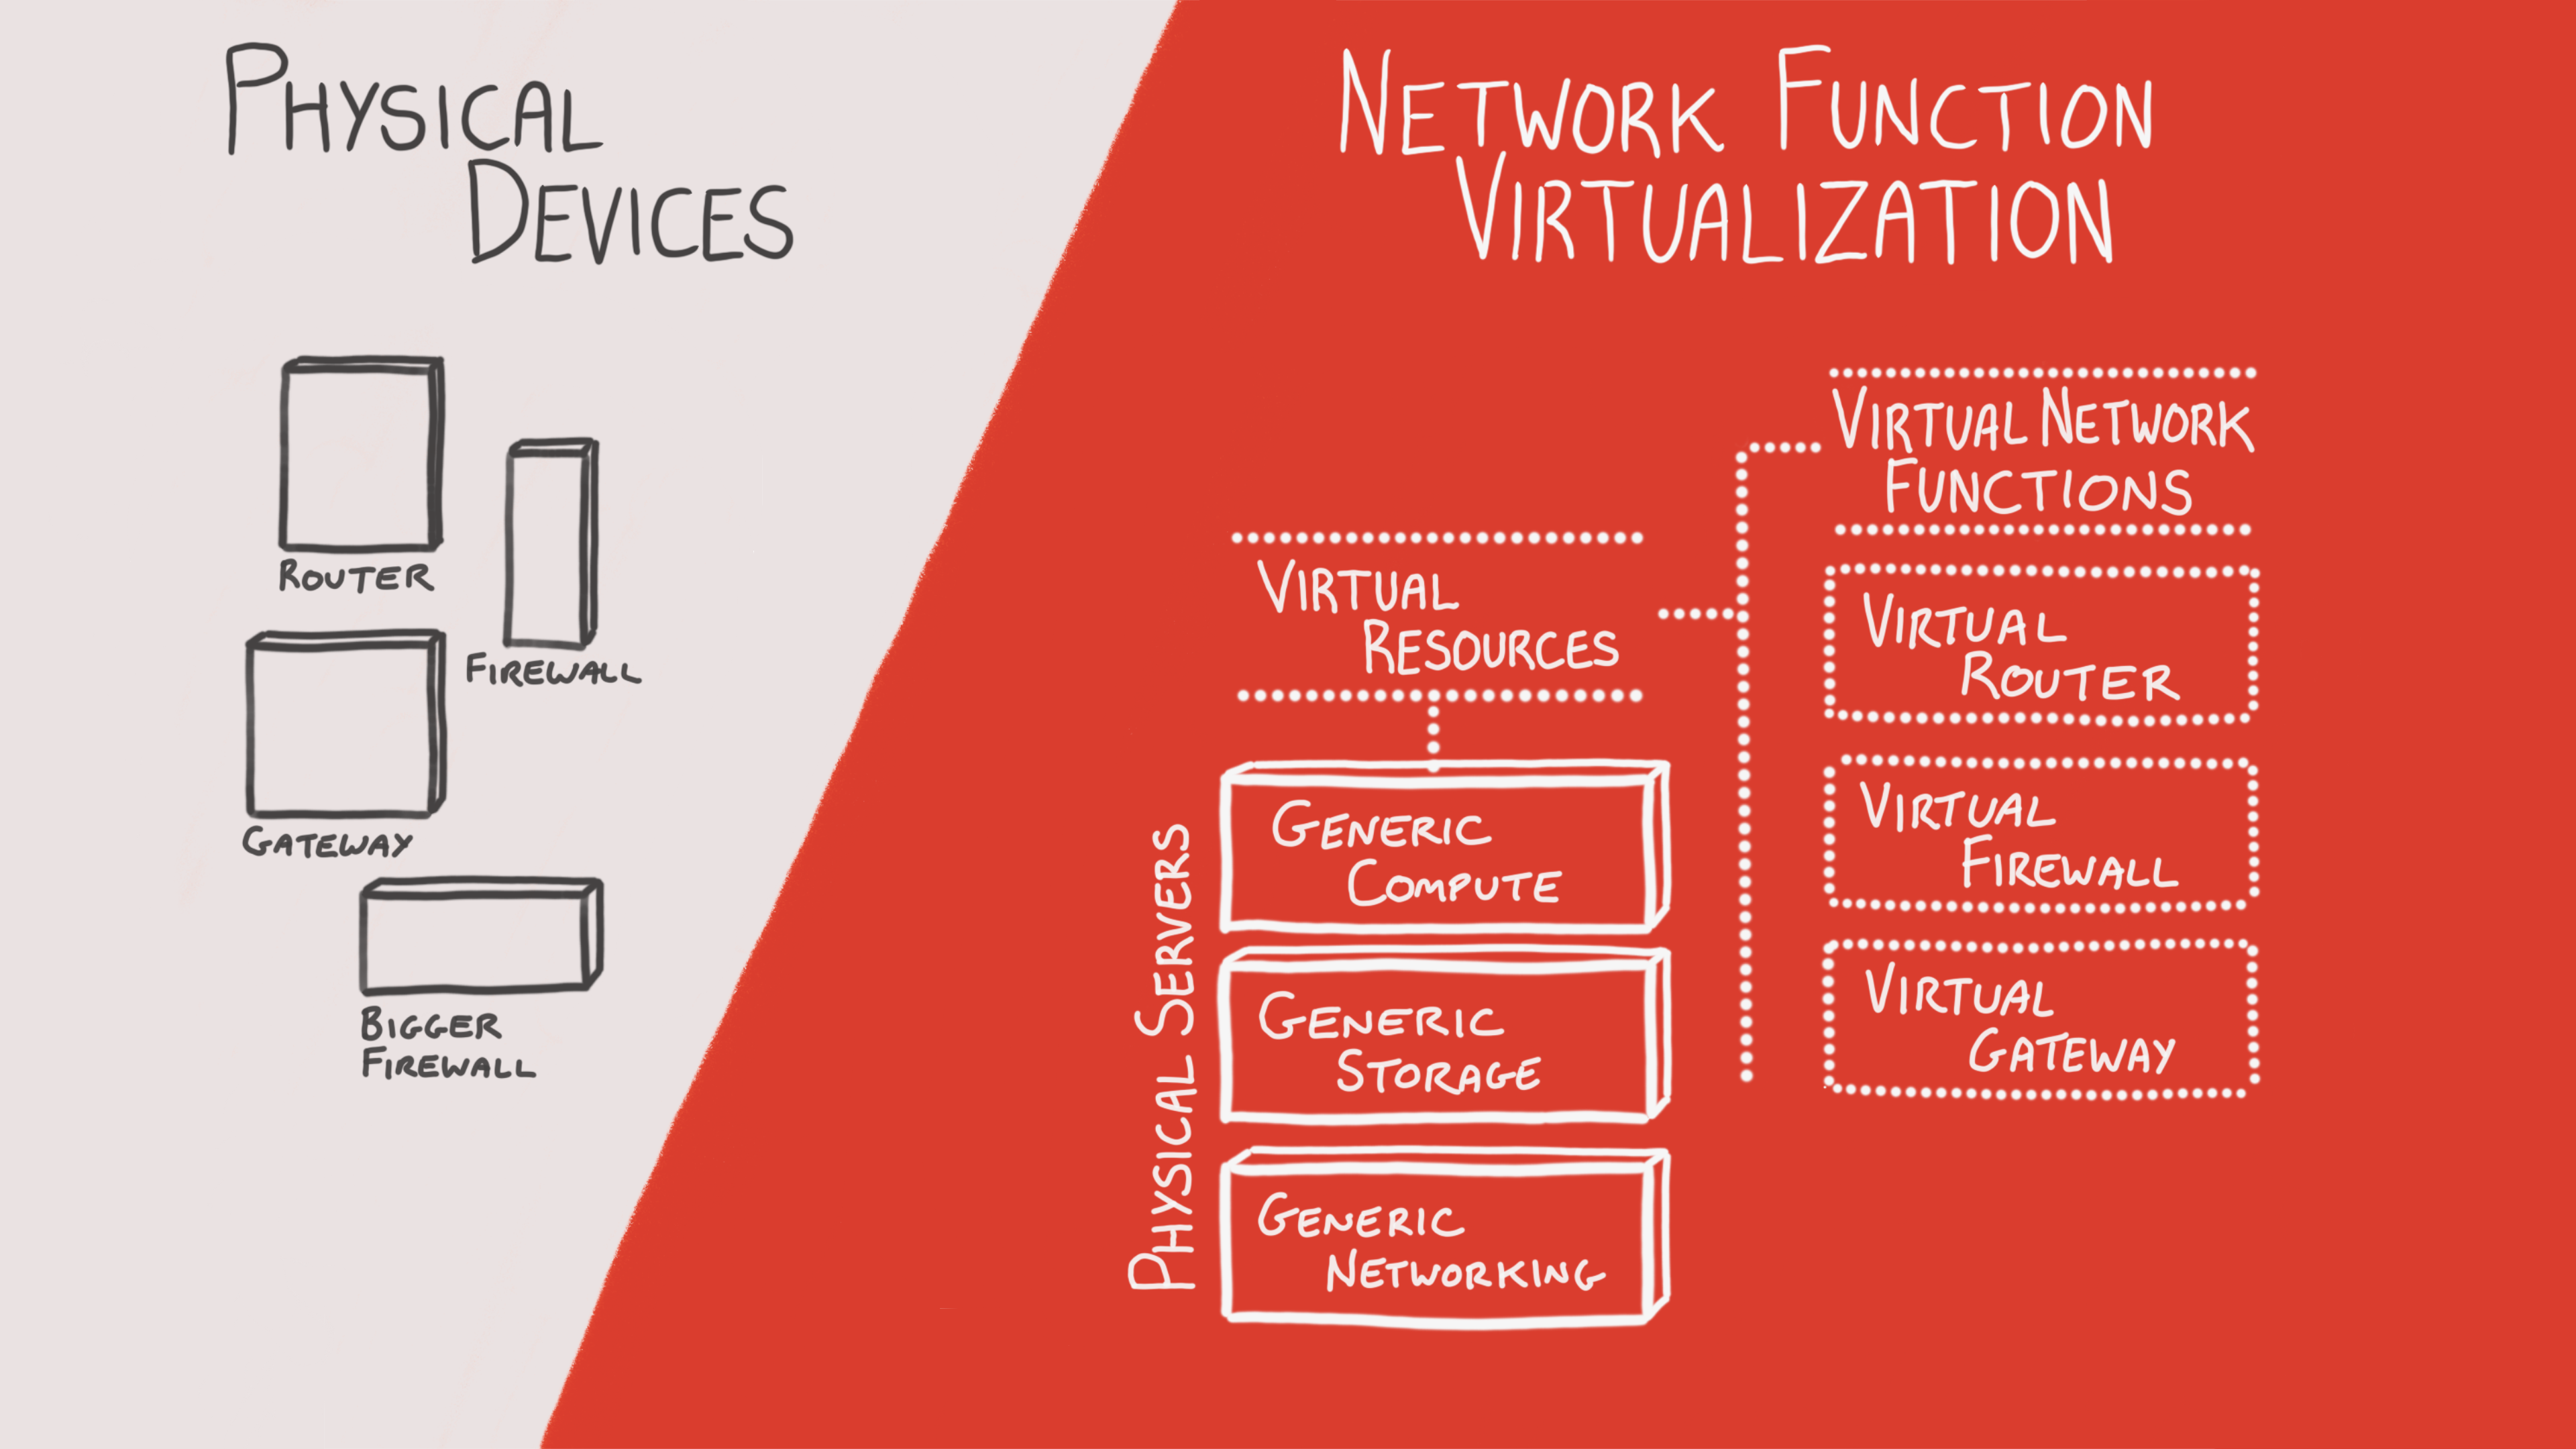 What Is Network Function Virtualization